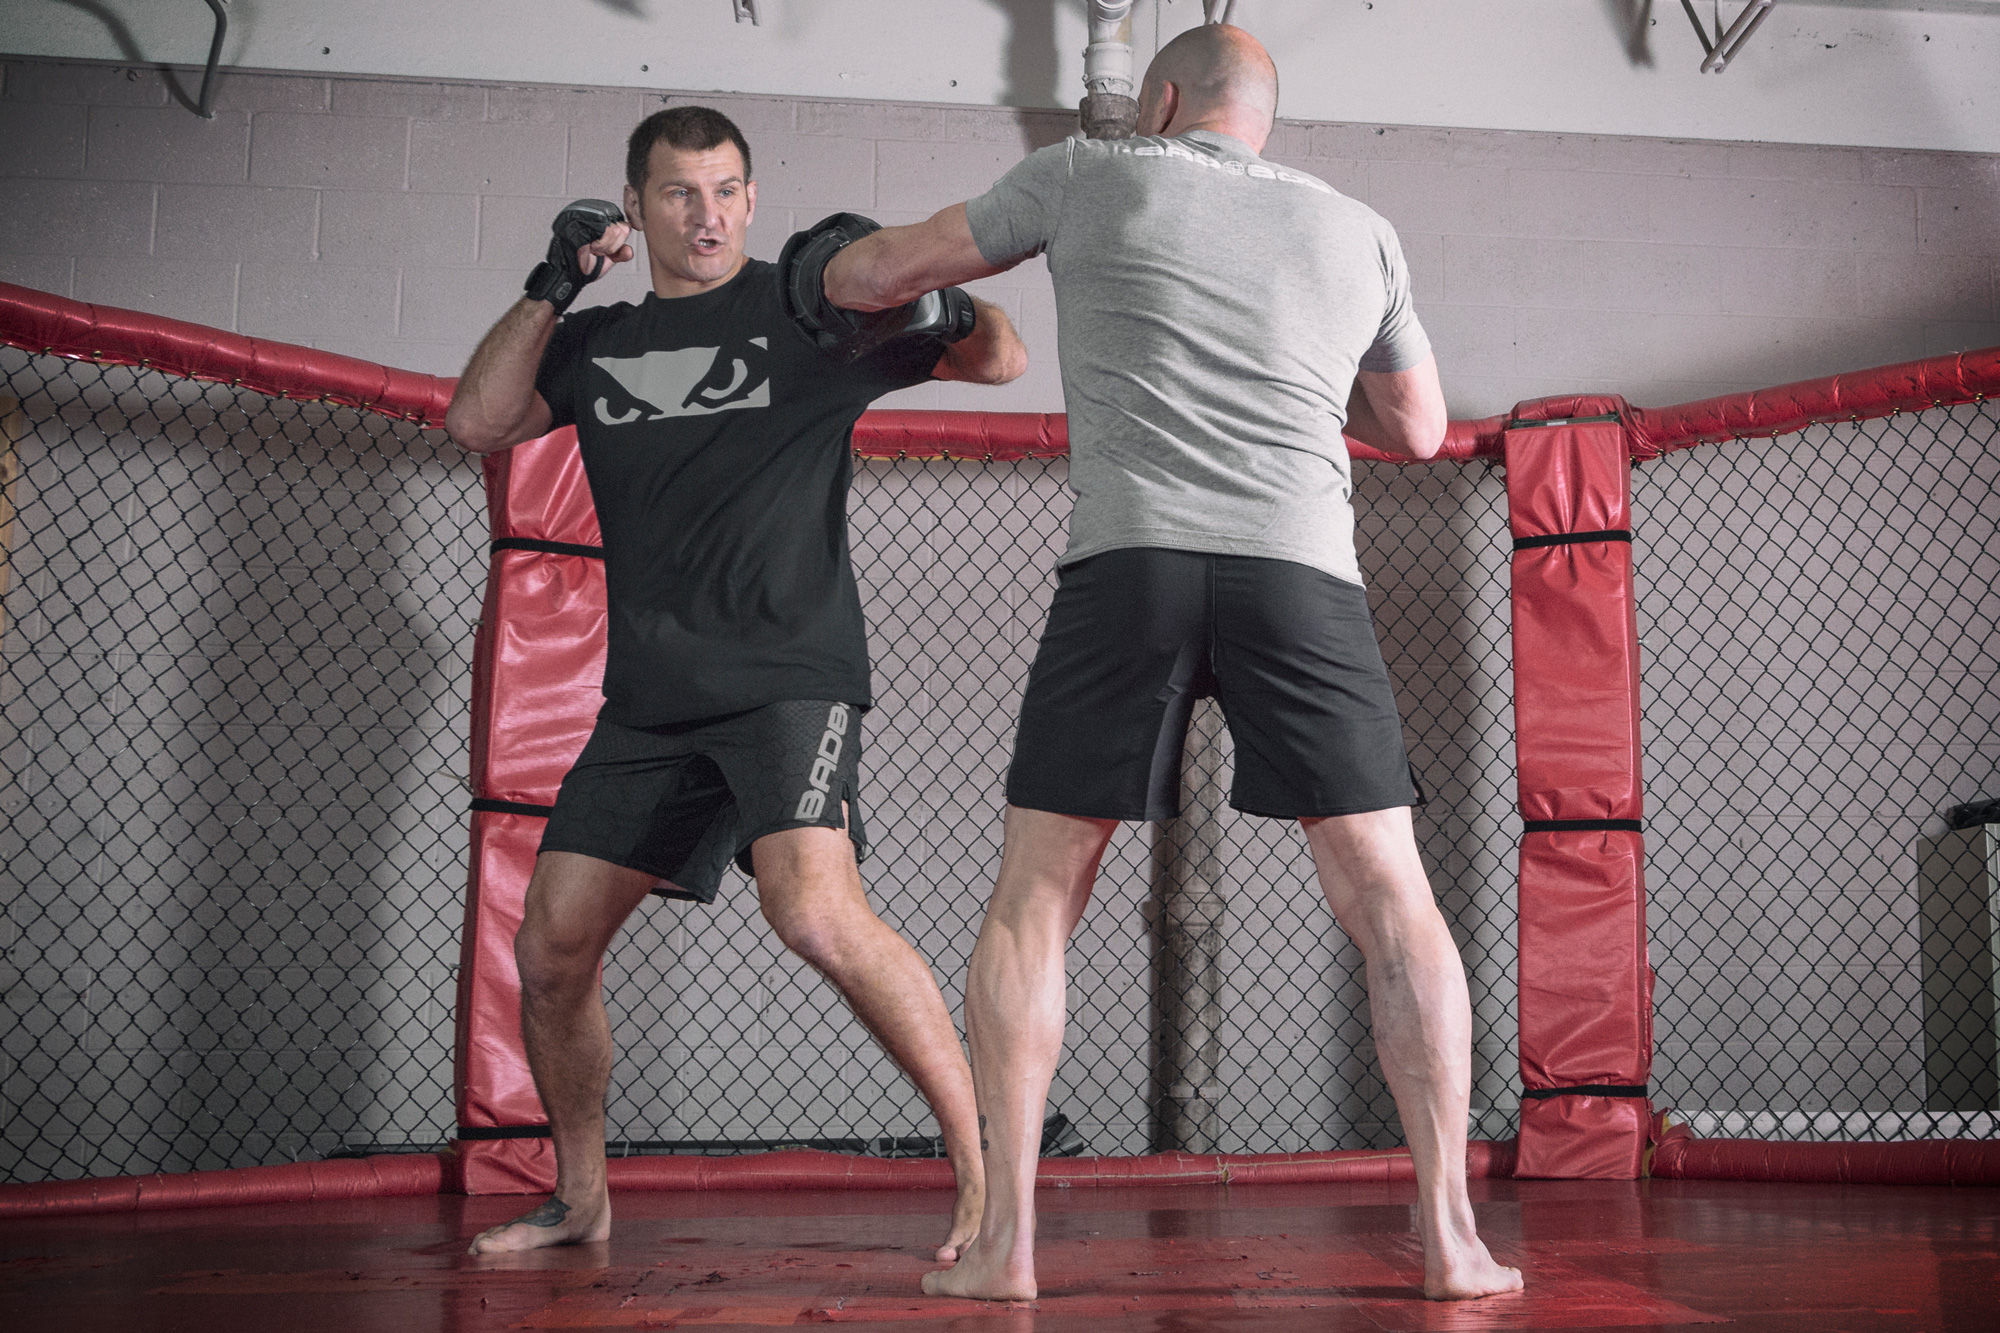 stipe-boxing-in-the-cage.jpg